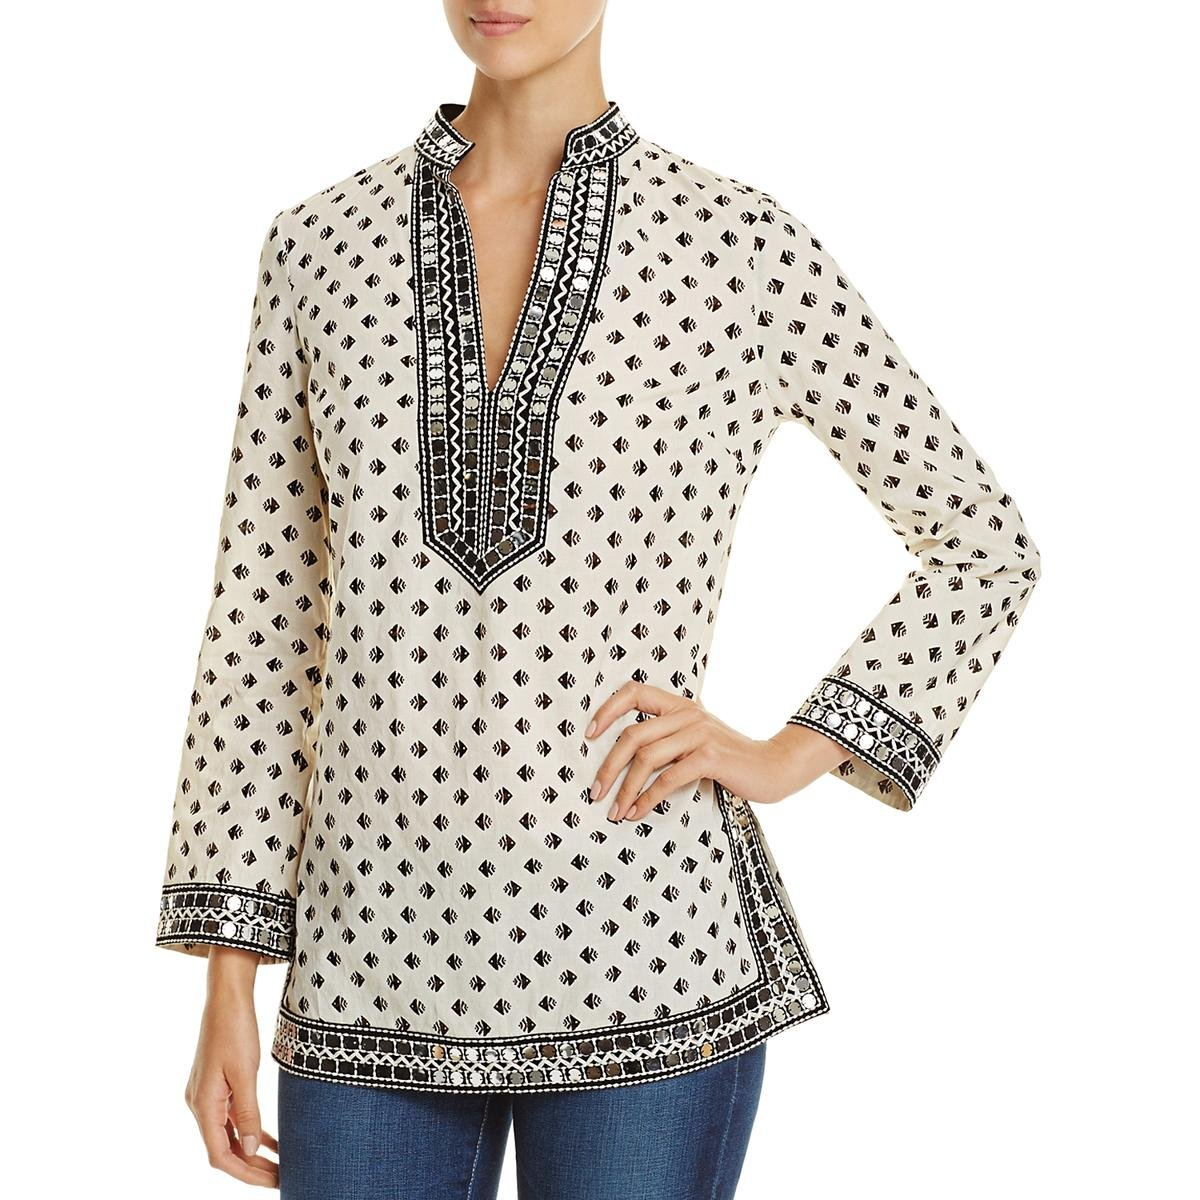 Tory Burch Womens Printed Sequined Tunic Top Ivory 4 by Tory Burch